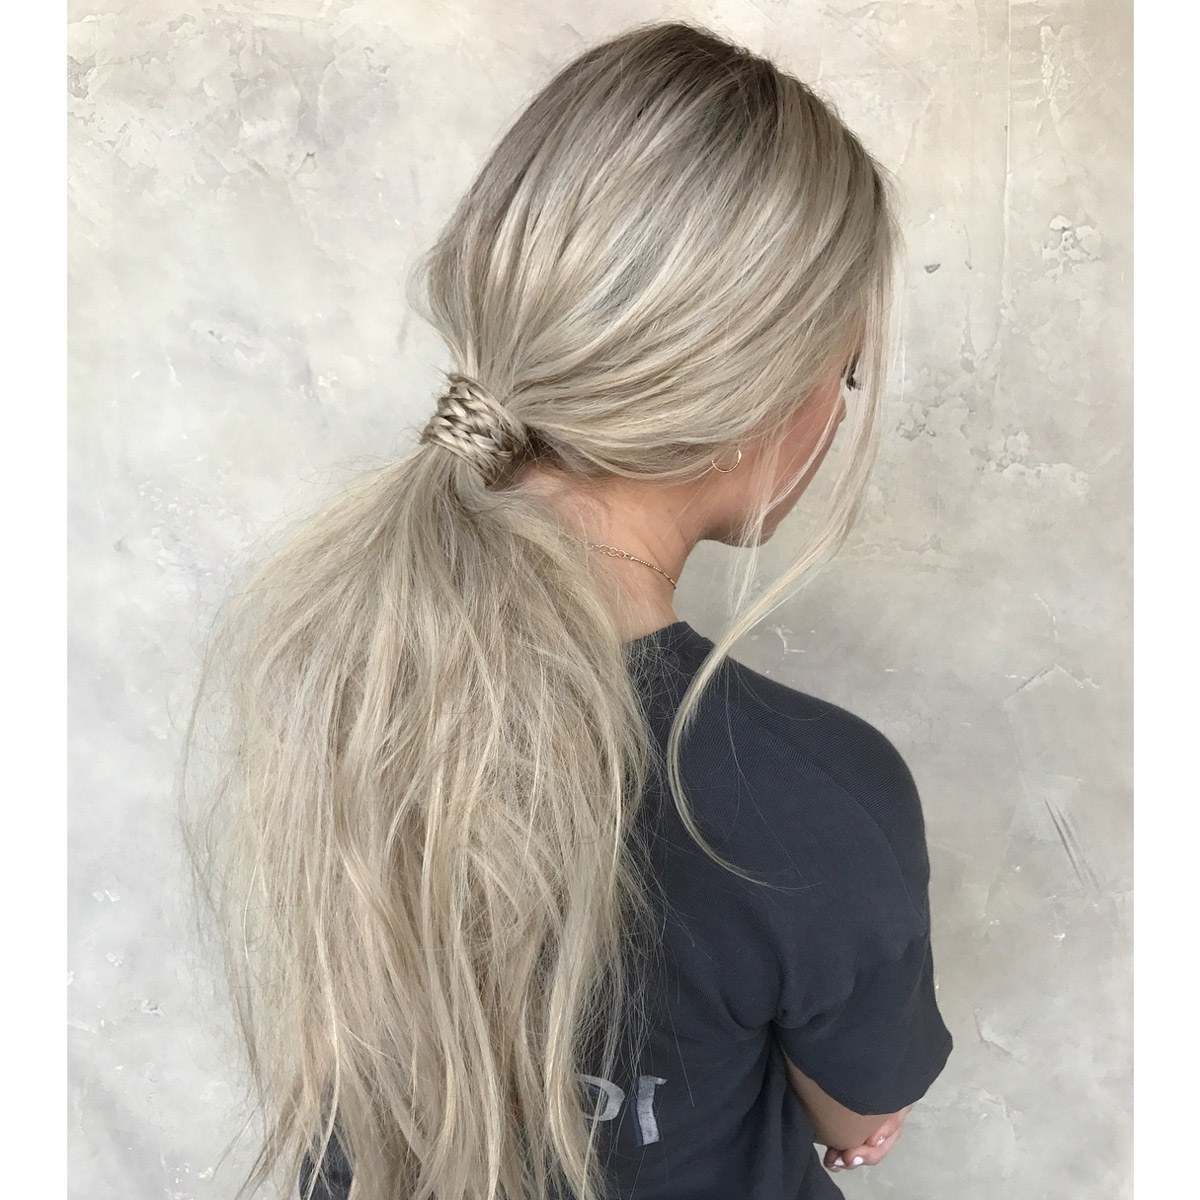 27 Ponytail Hairstyles For 2018: Best Ponytail Styles (View 15 of 20)